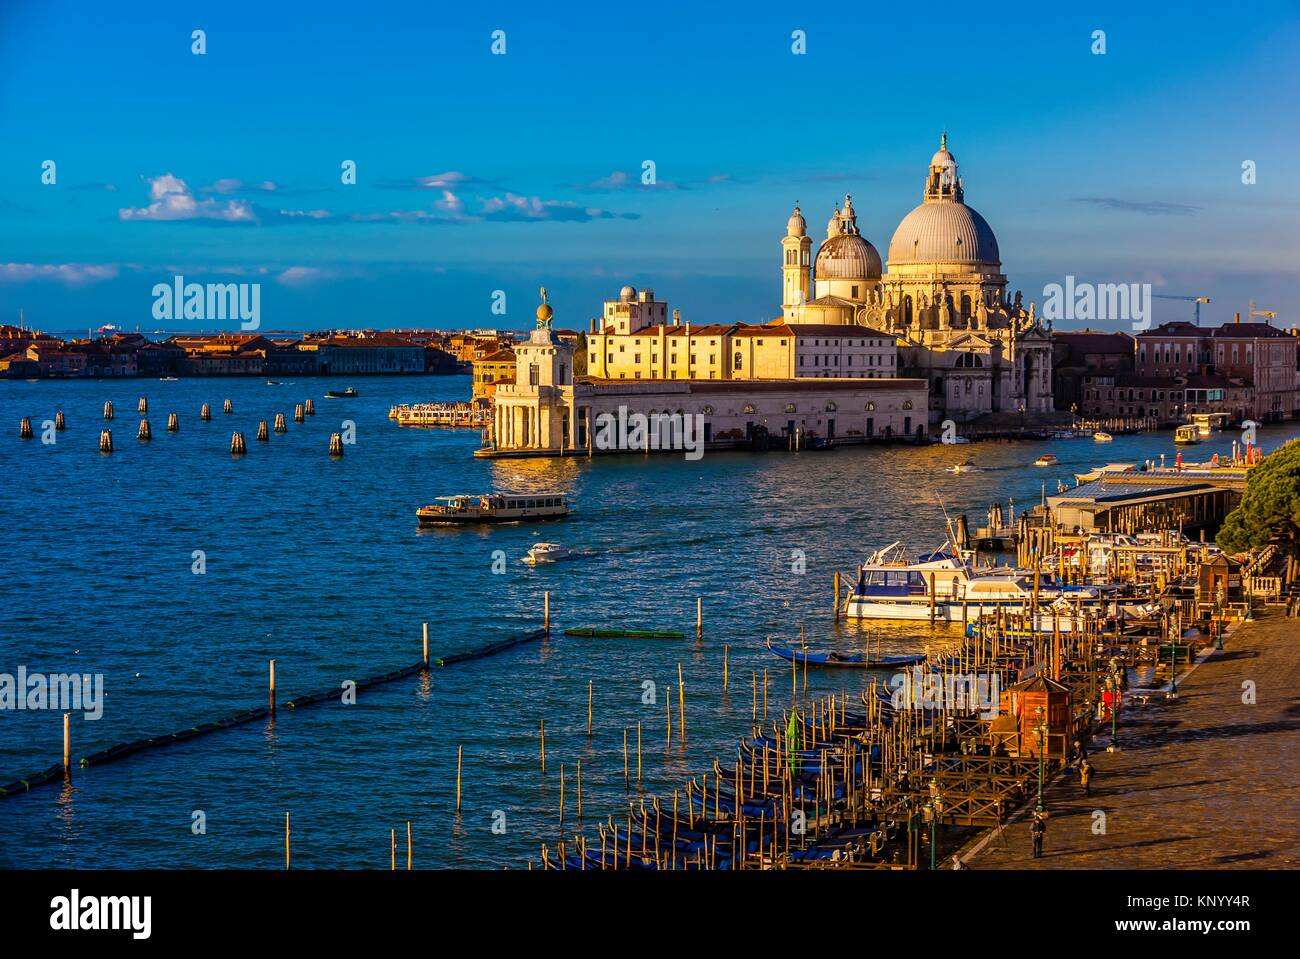 Overview of the Basilica di Santa Maria della Salute, Venice, italy. - Stock Image